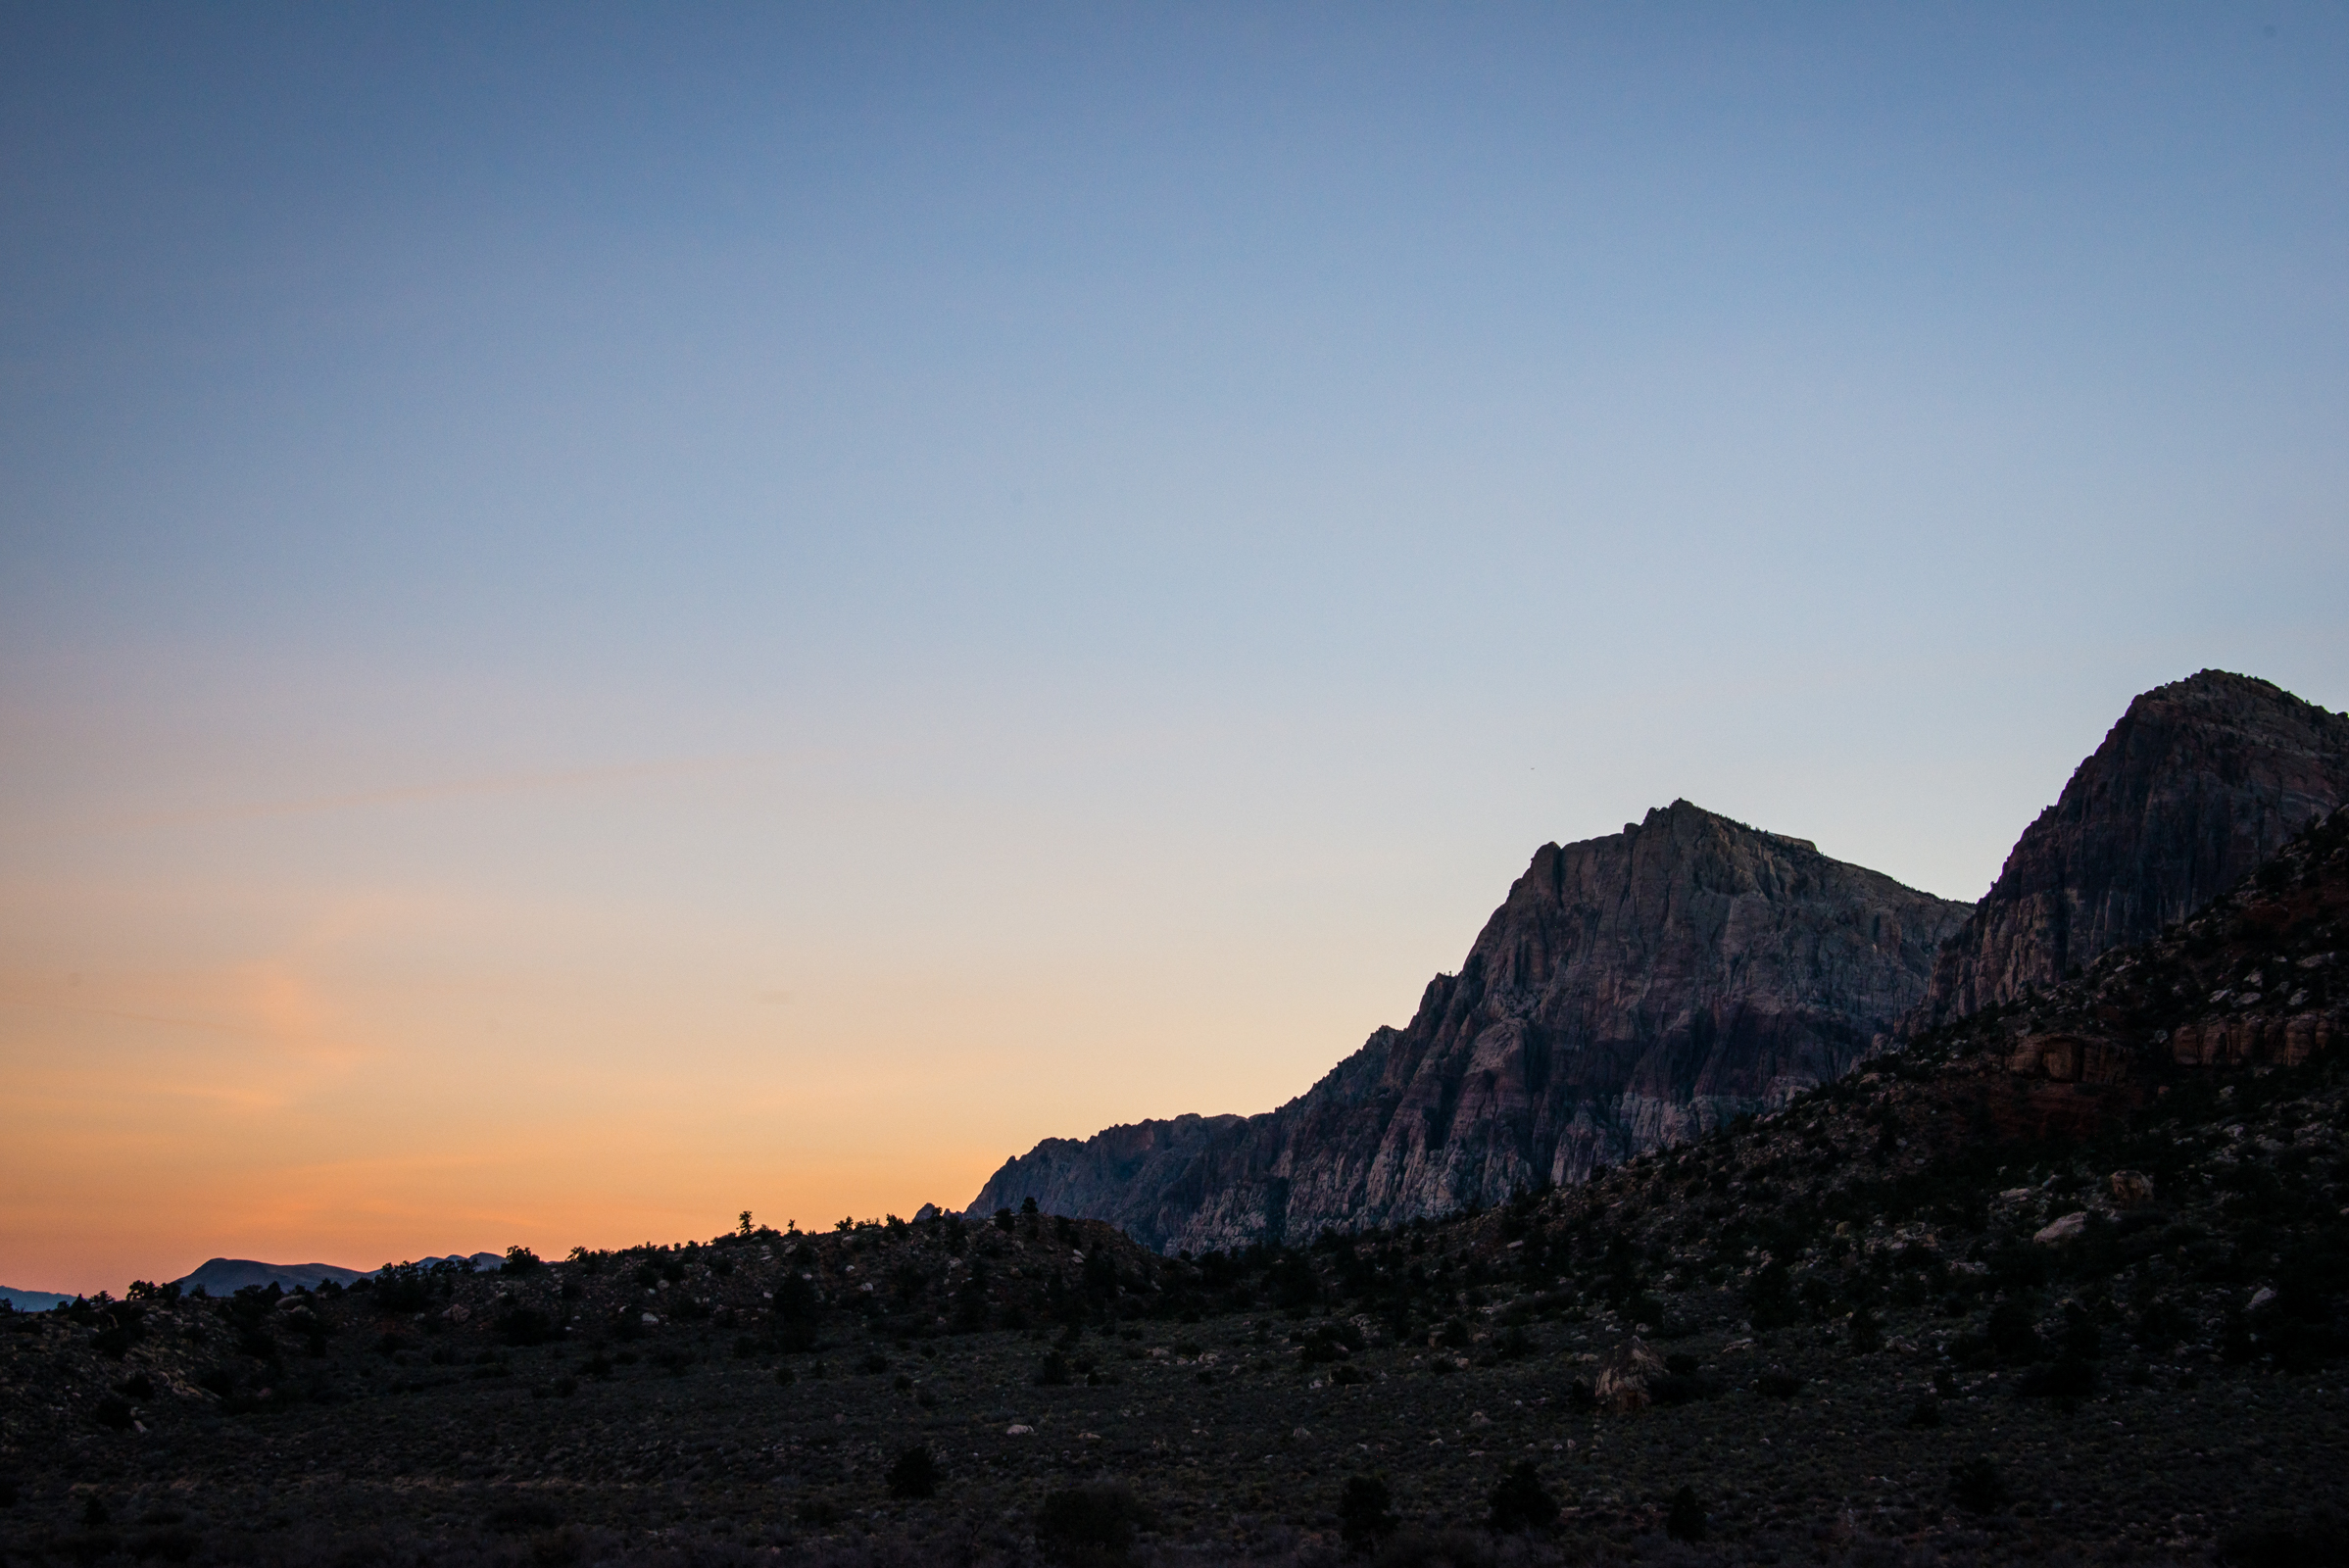 sunset at red rock canyon, nevada, photographed by jamie bannon photography.